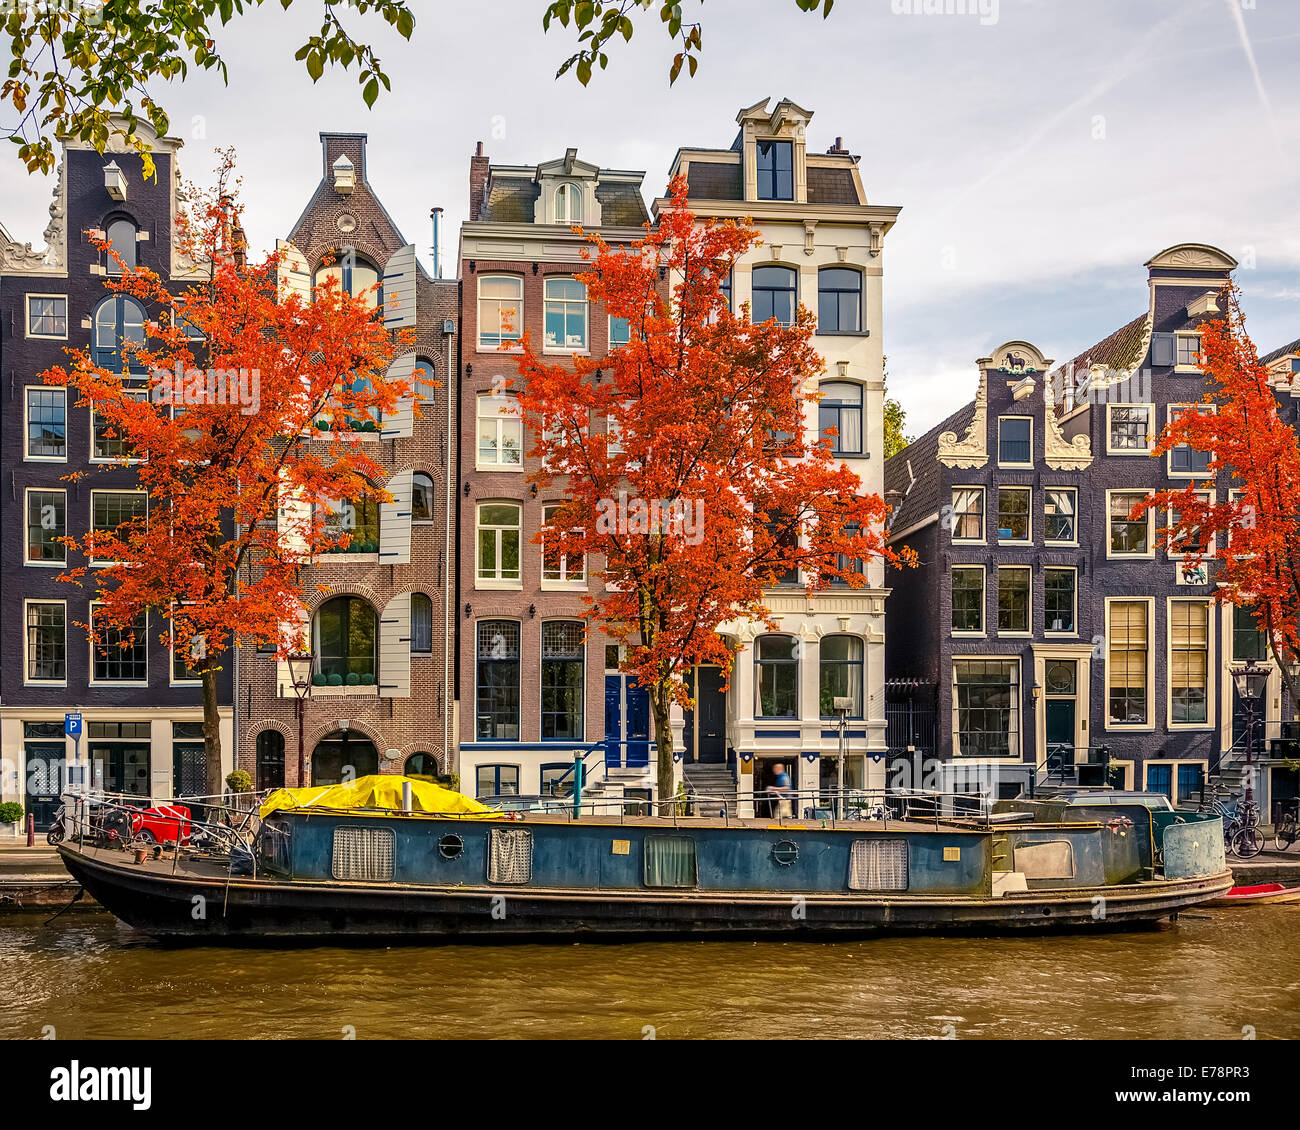 Buildings on canal in Amsterdam - Stock Image